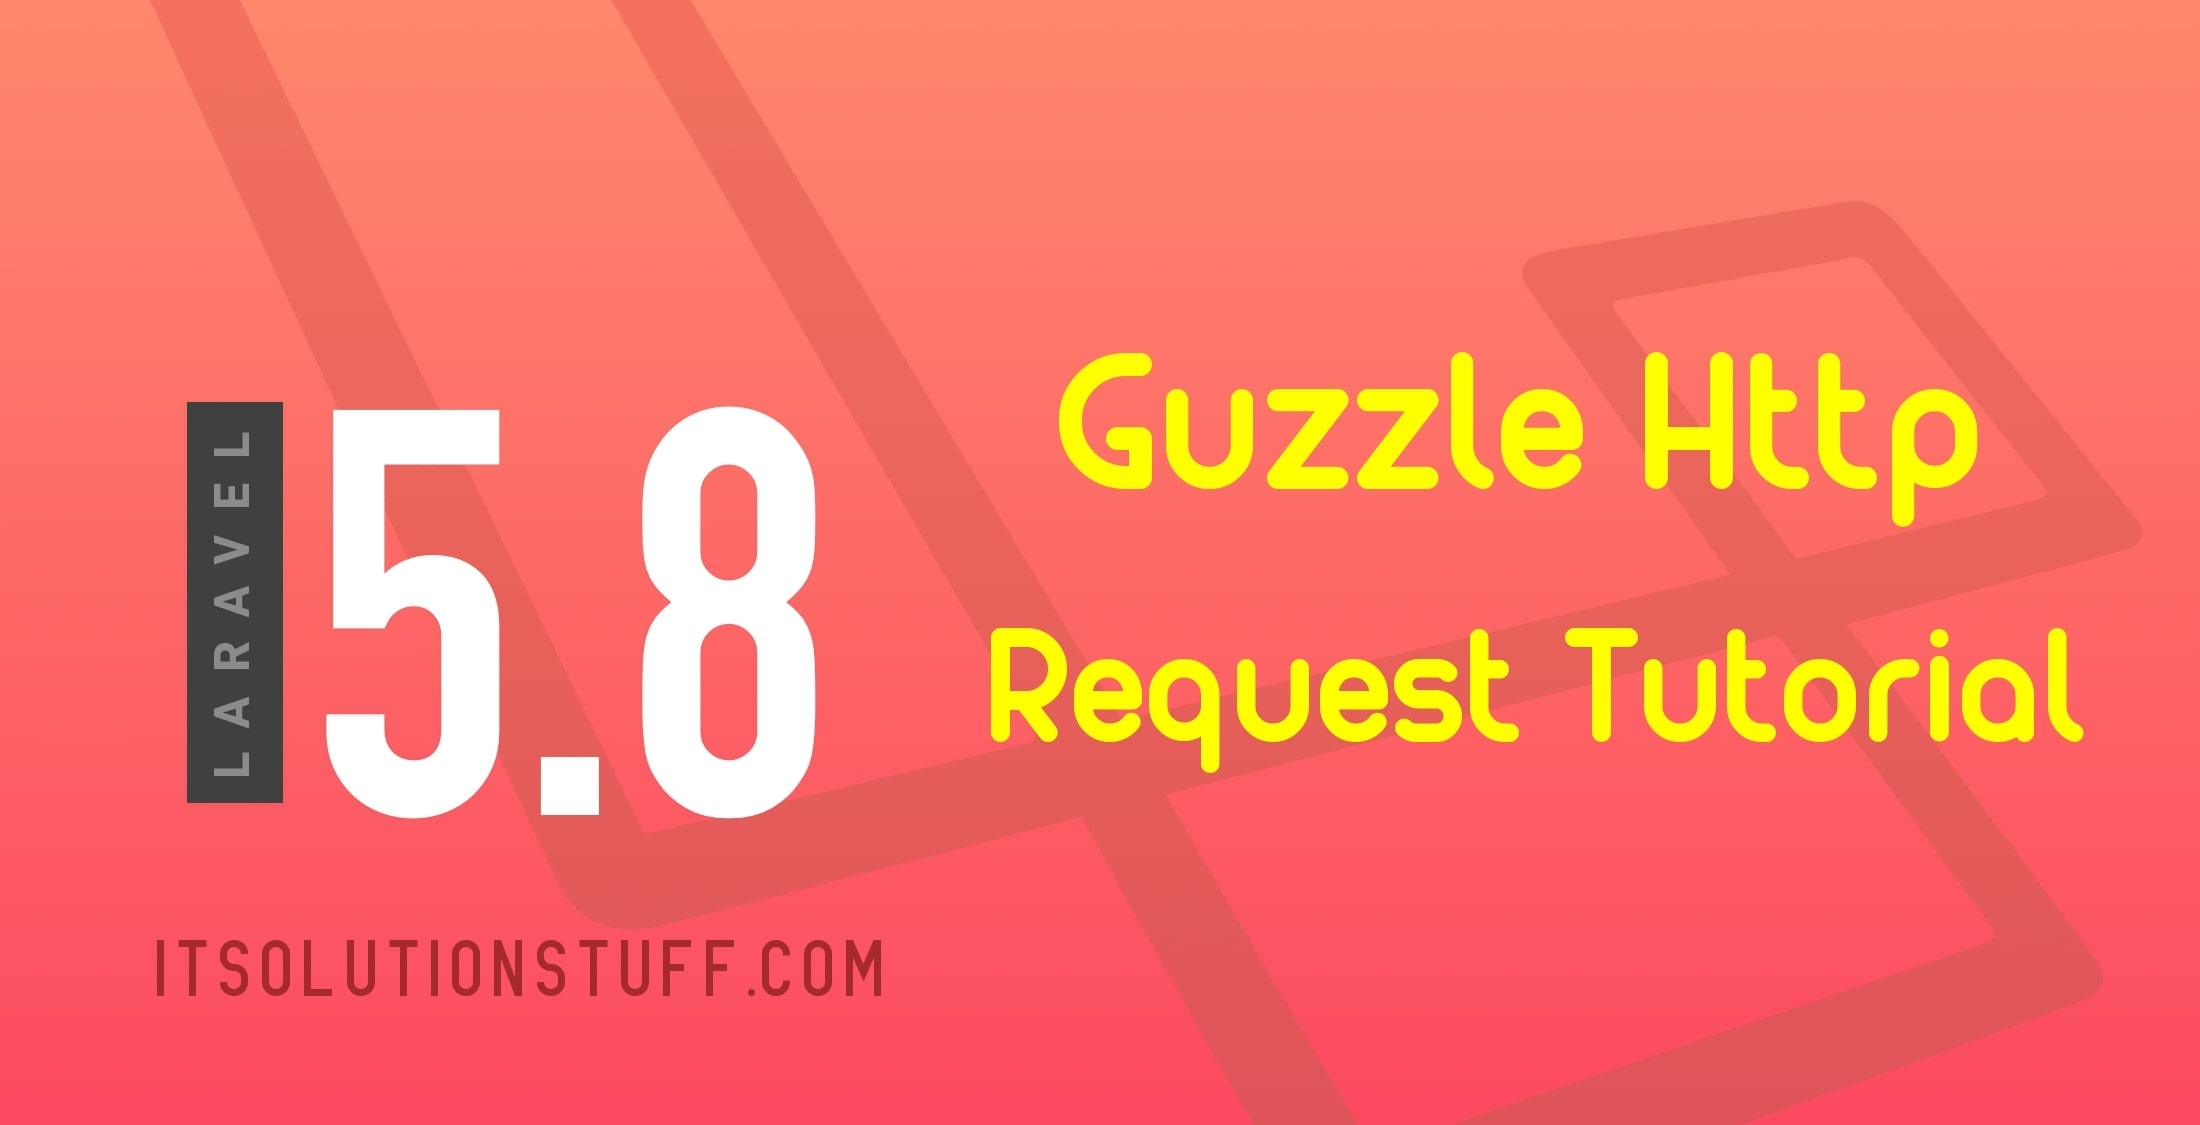 Guzzle http client request tutorial with Laravel 5.8